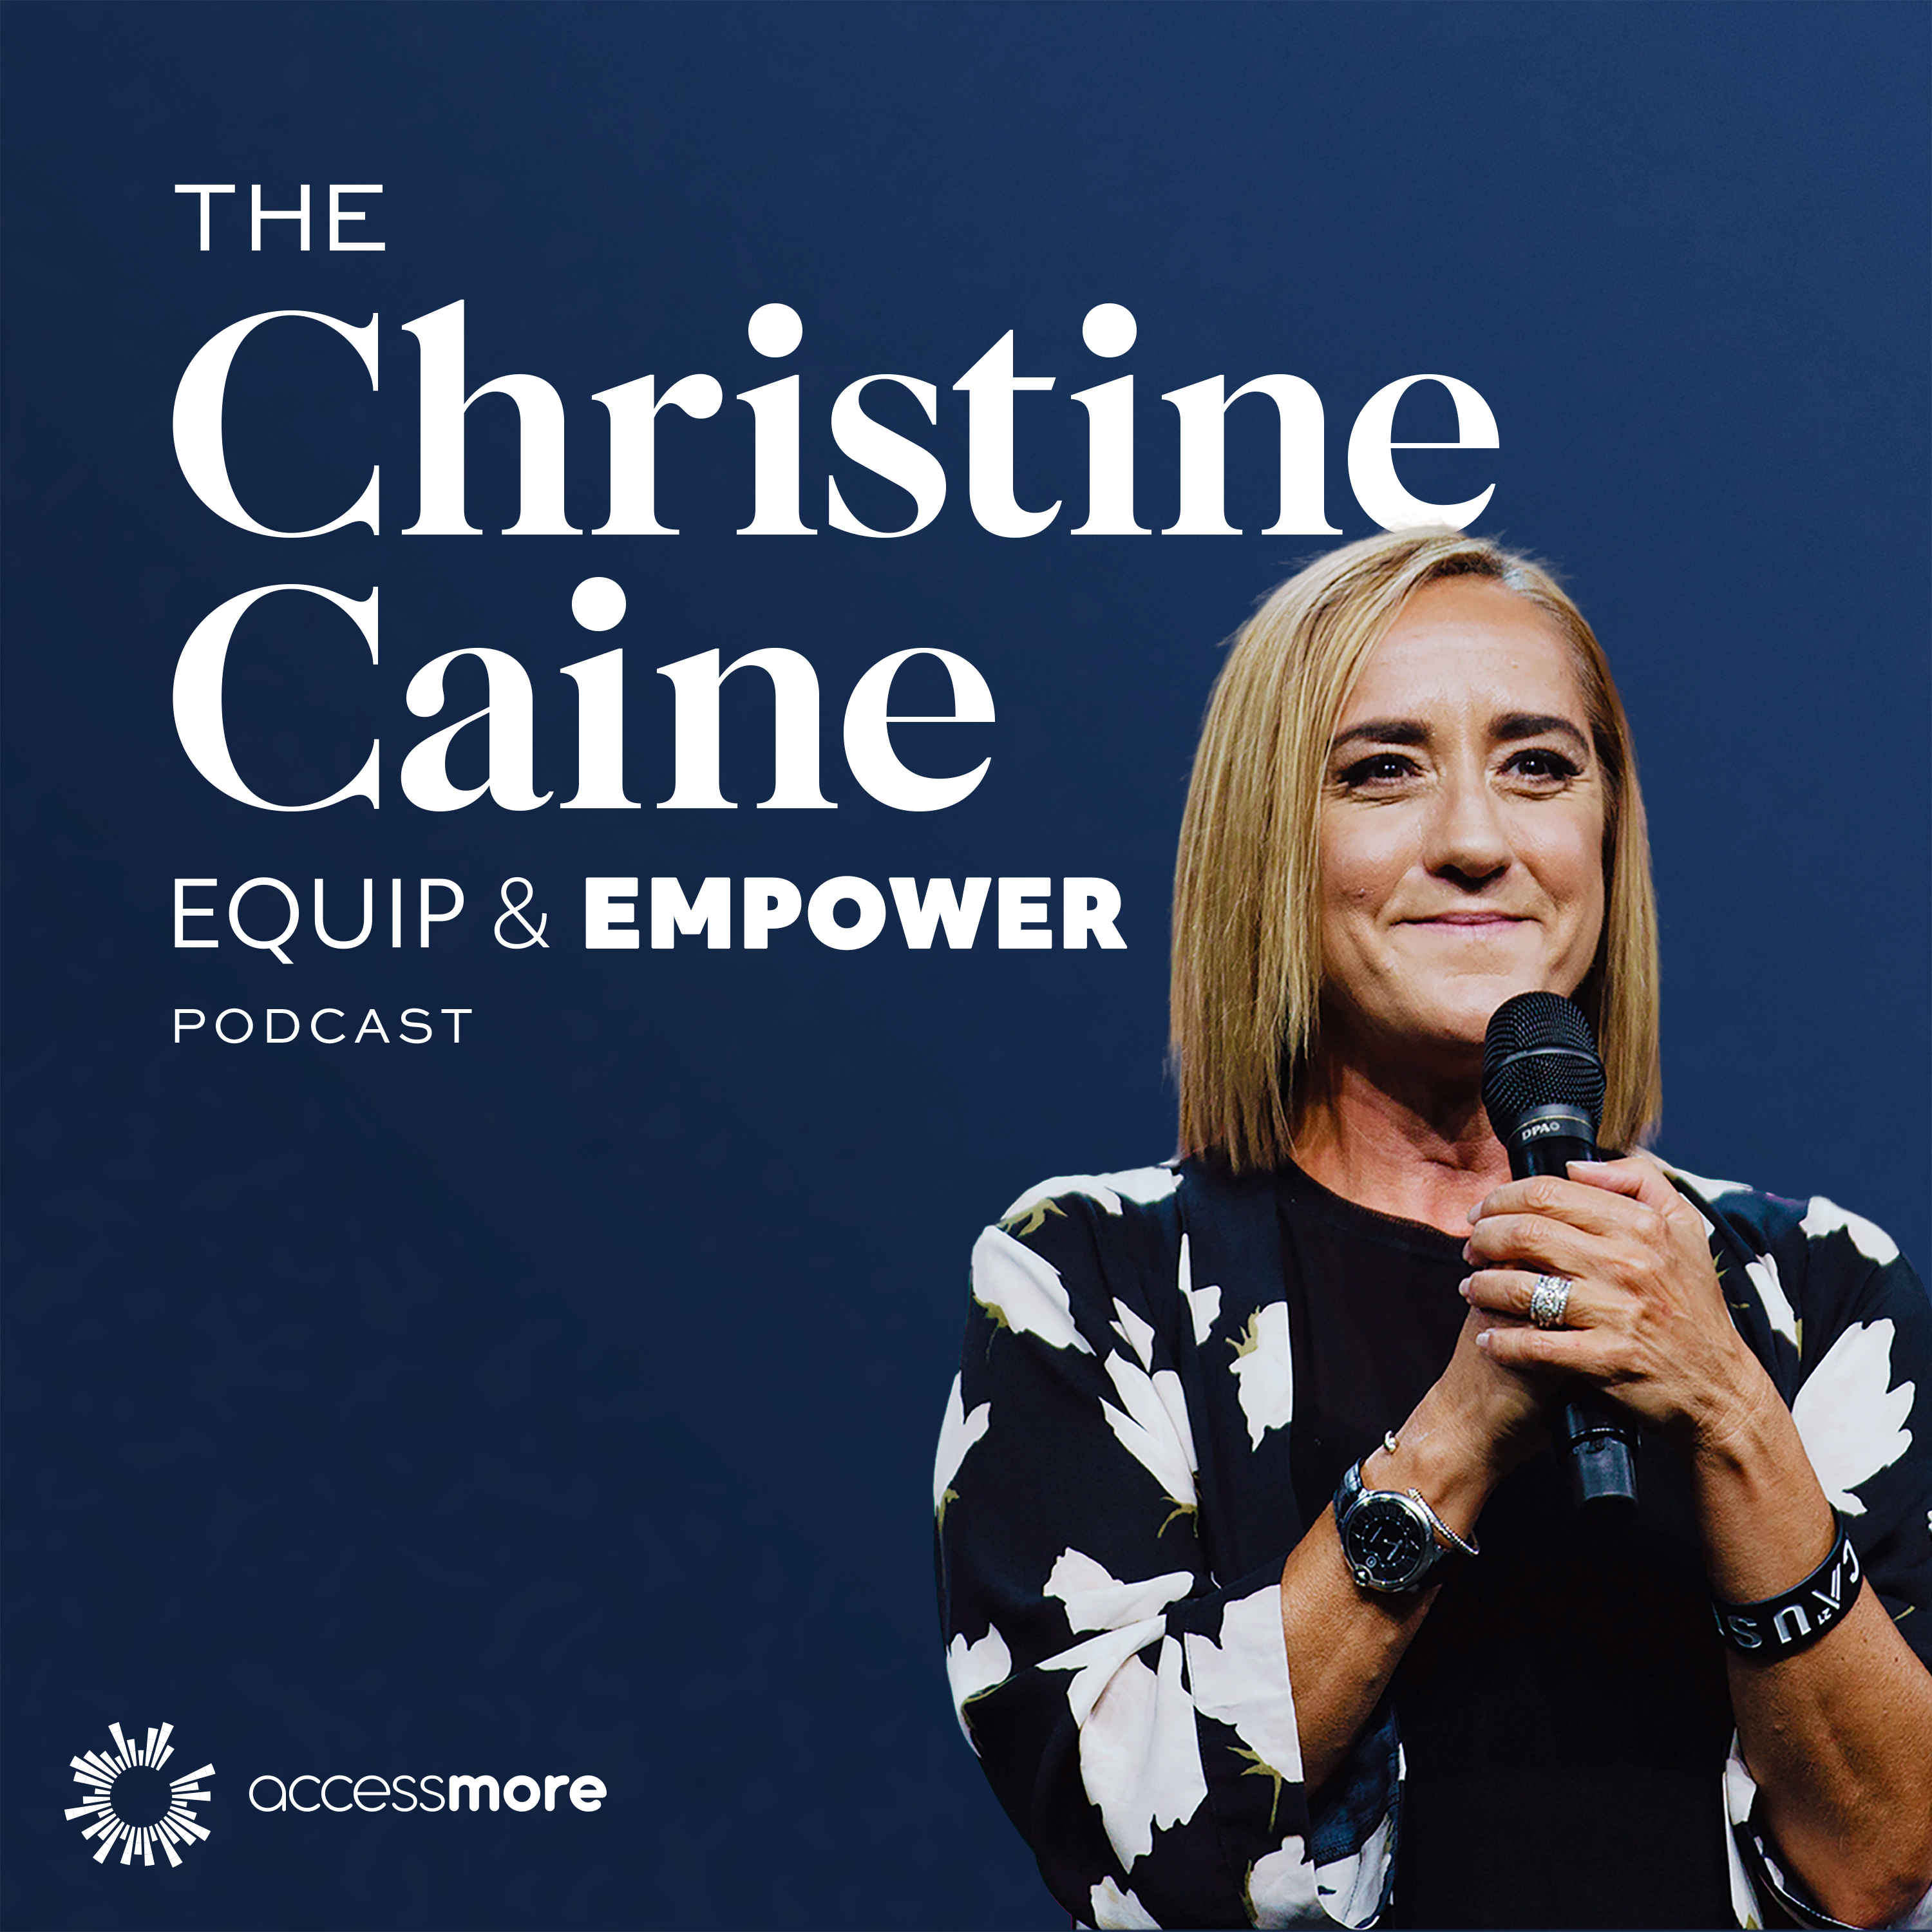 The Christine Caine Equip and Empower Podcast